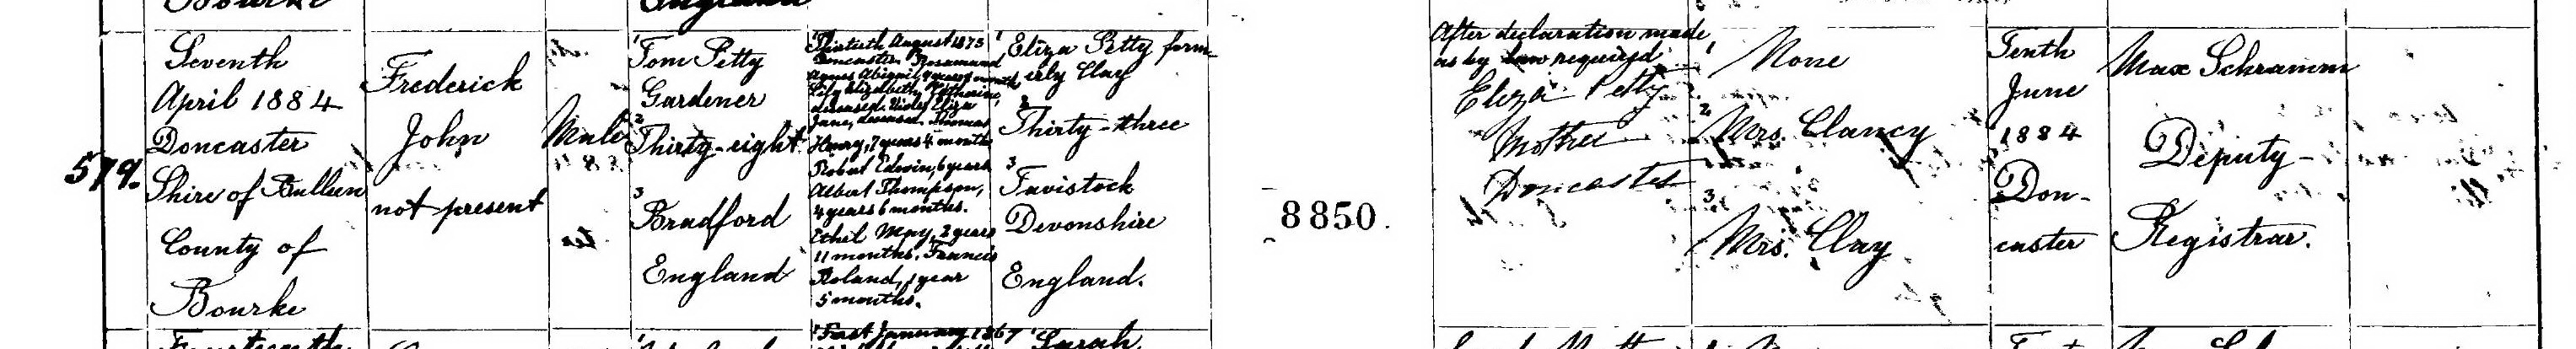 Frederick John Petty birth certificate